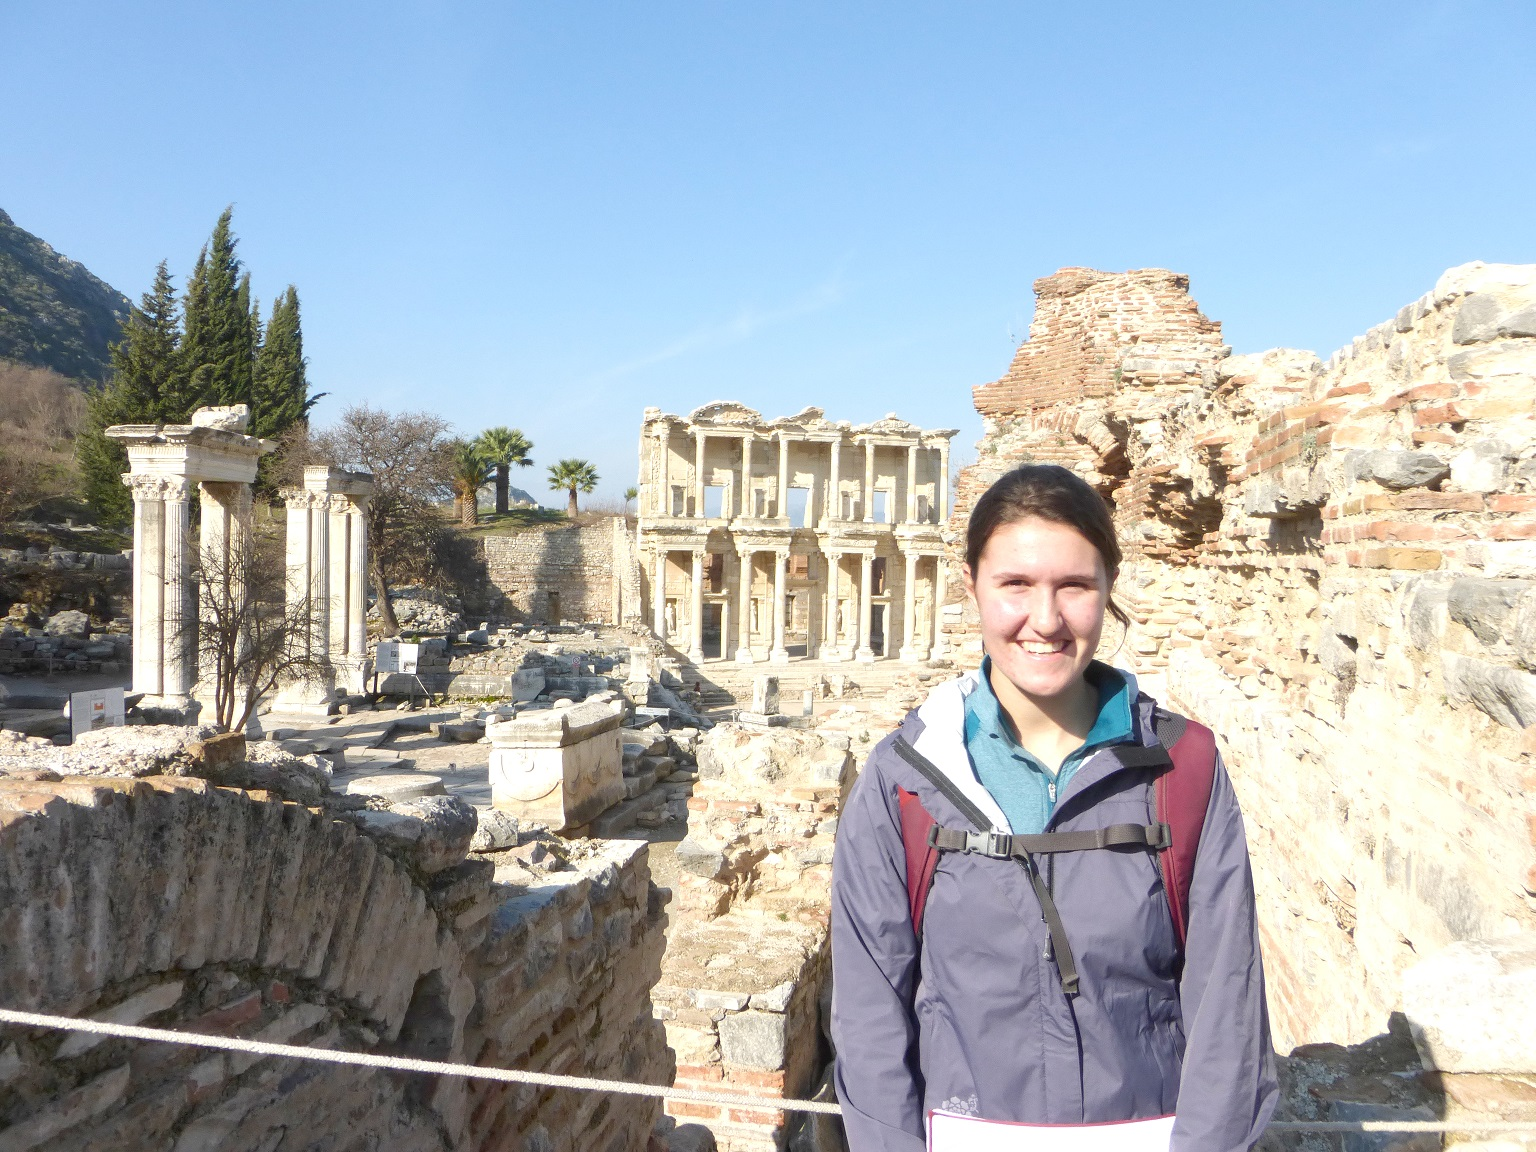 Rowanne Fairchild at Ephesus Ruins